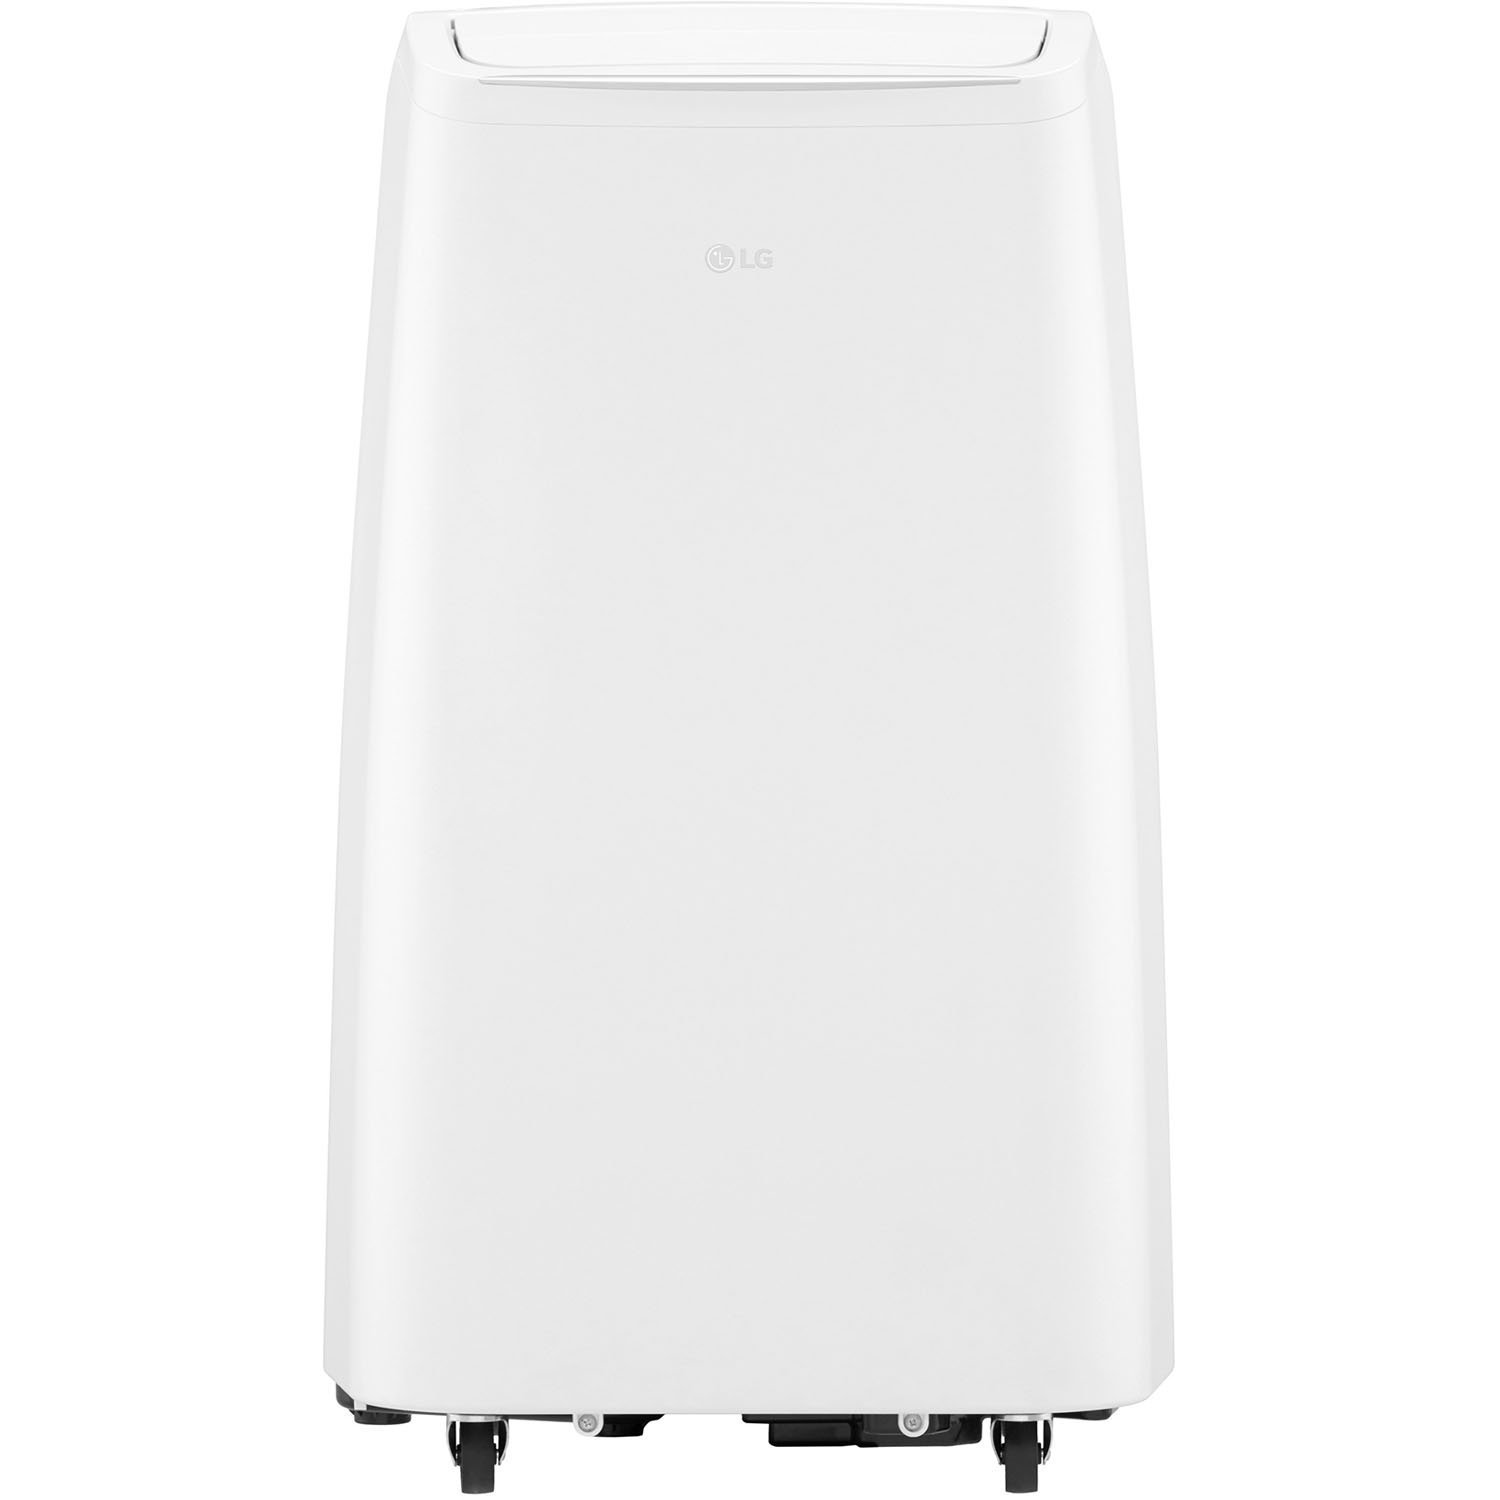 LG Portable 115V Air Conditioner, Rooms up to 200-Sq. Ft, White (Certified Refurbished)